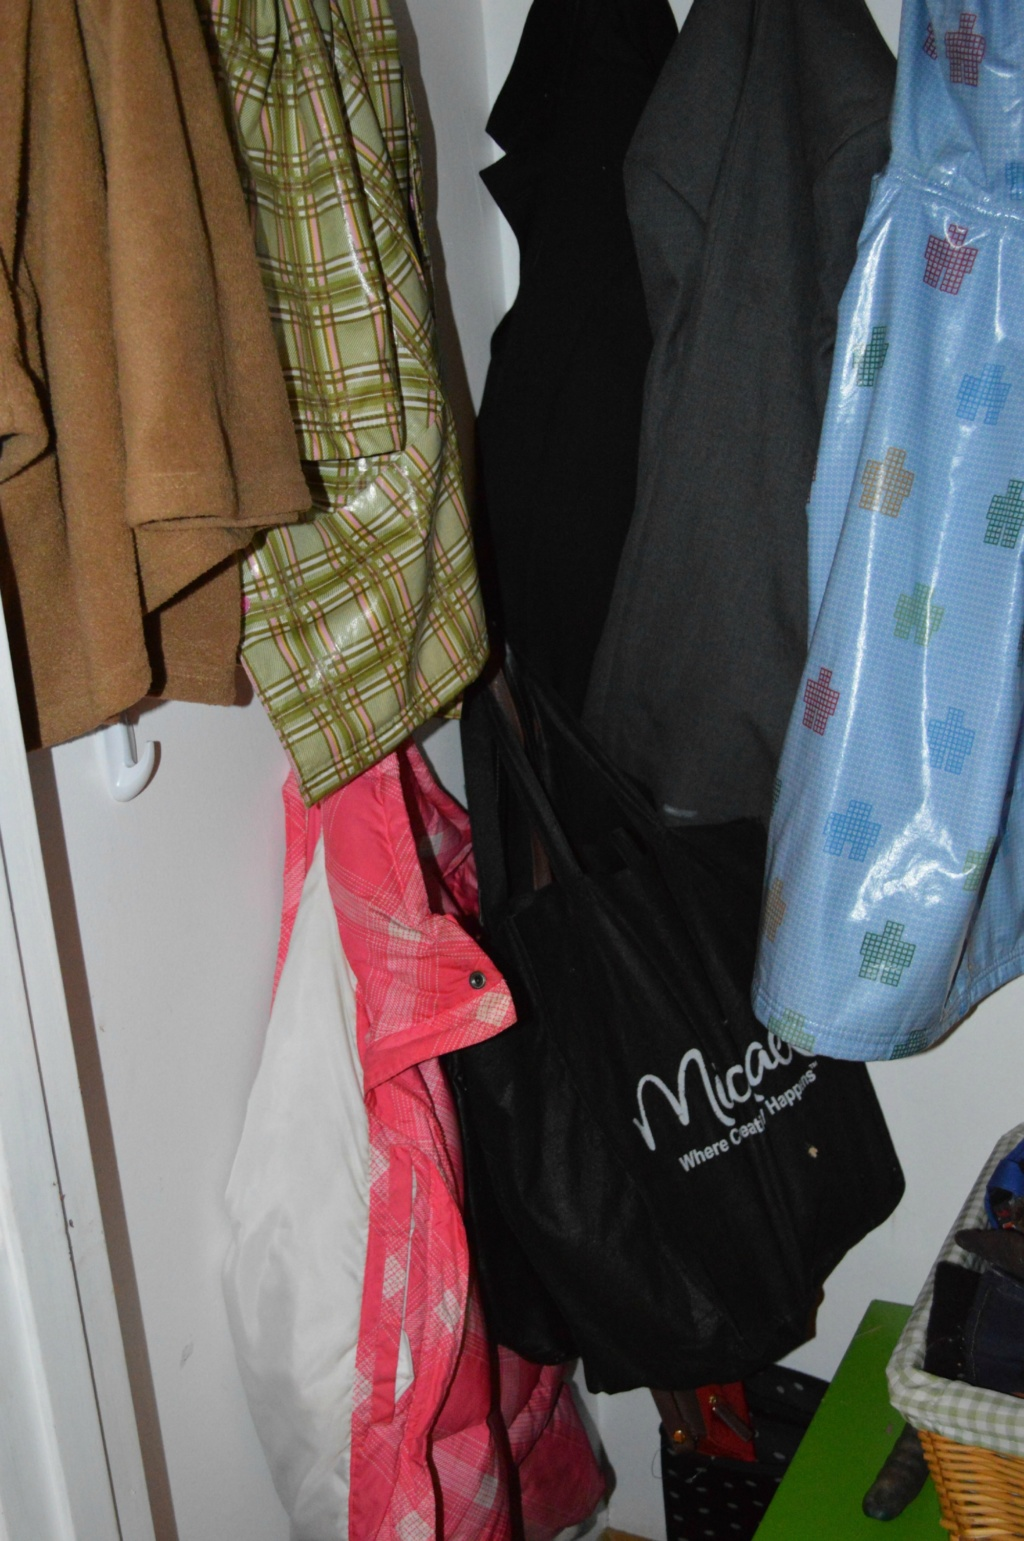 #write31days – Organize the Hall Closet & Winter Coat Shopping